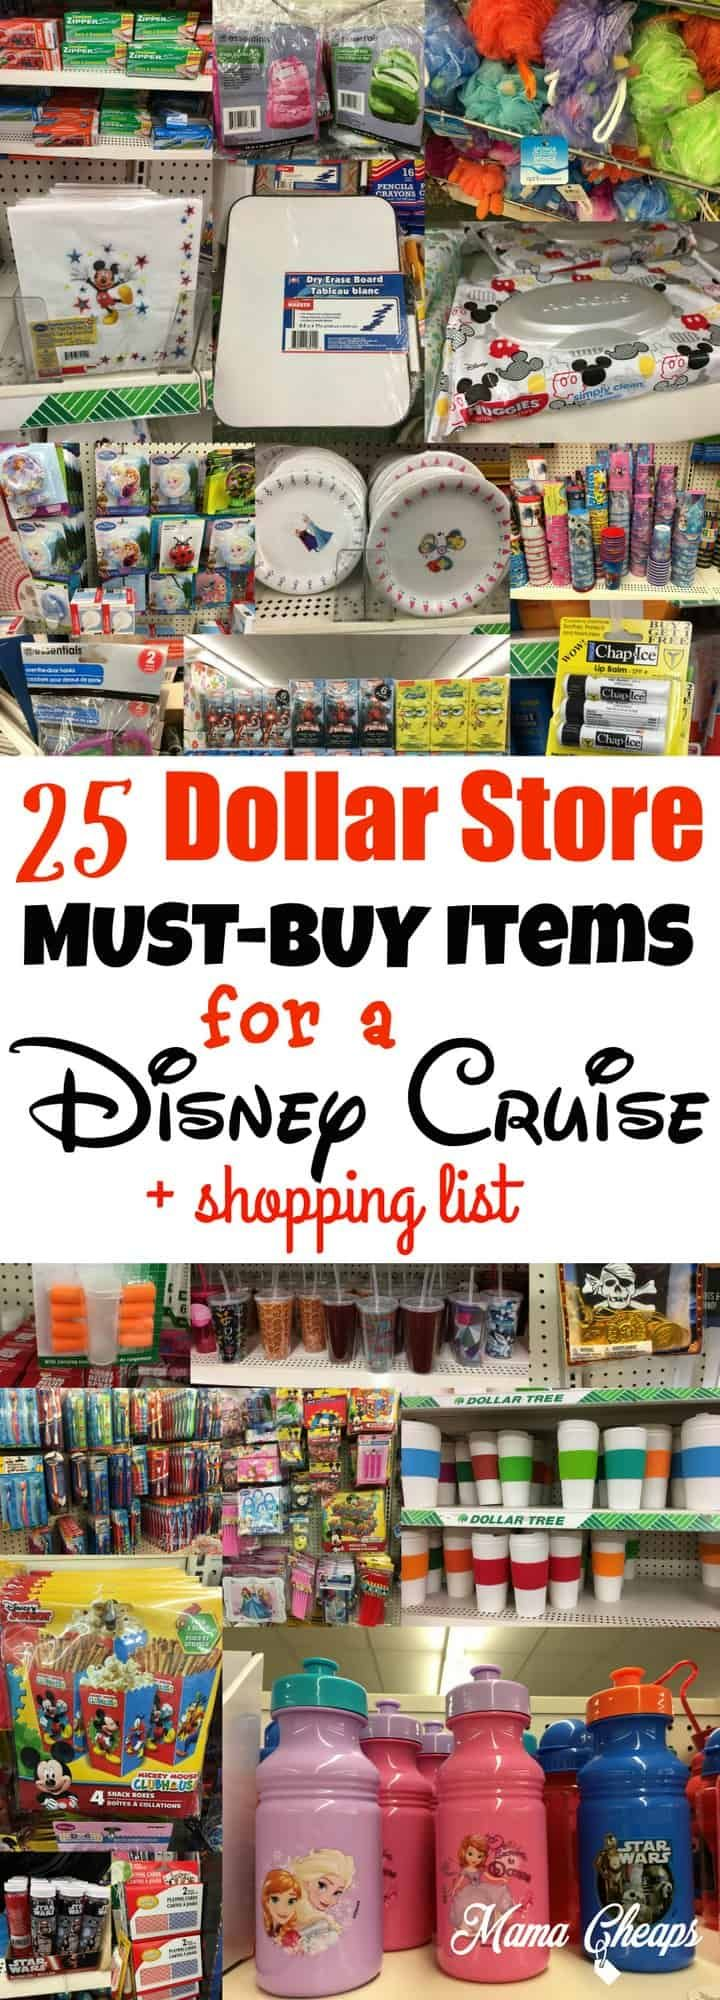 25 Dollar Store MUST-BUY Items for a Disney Cruise